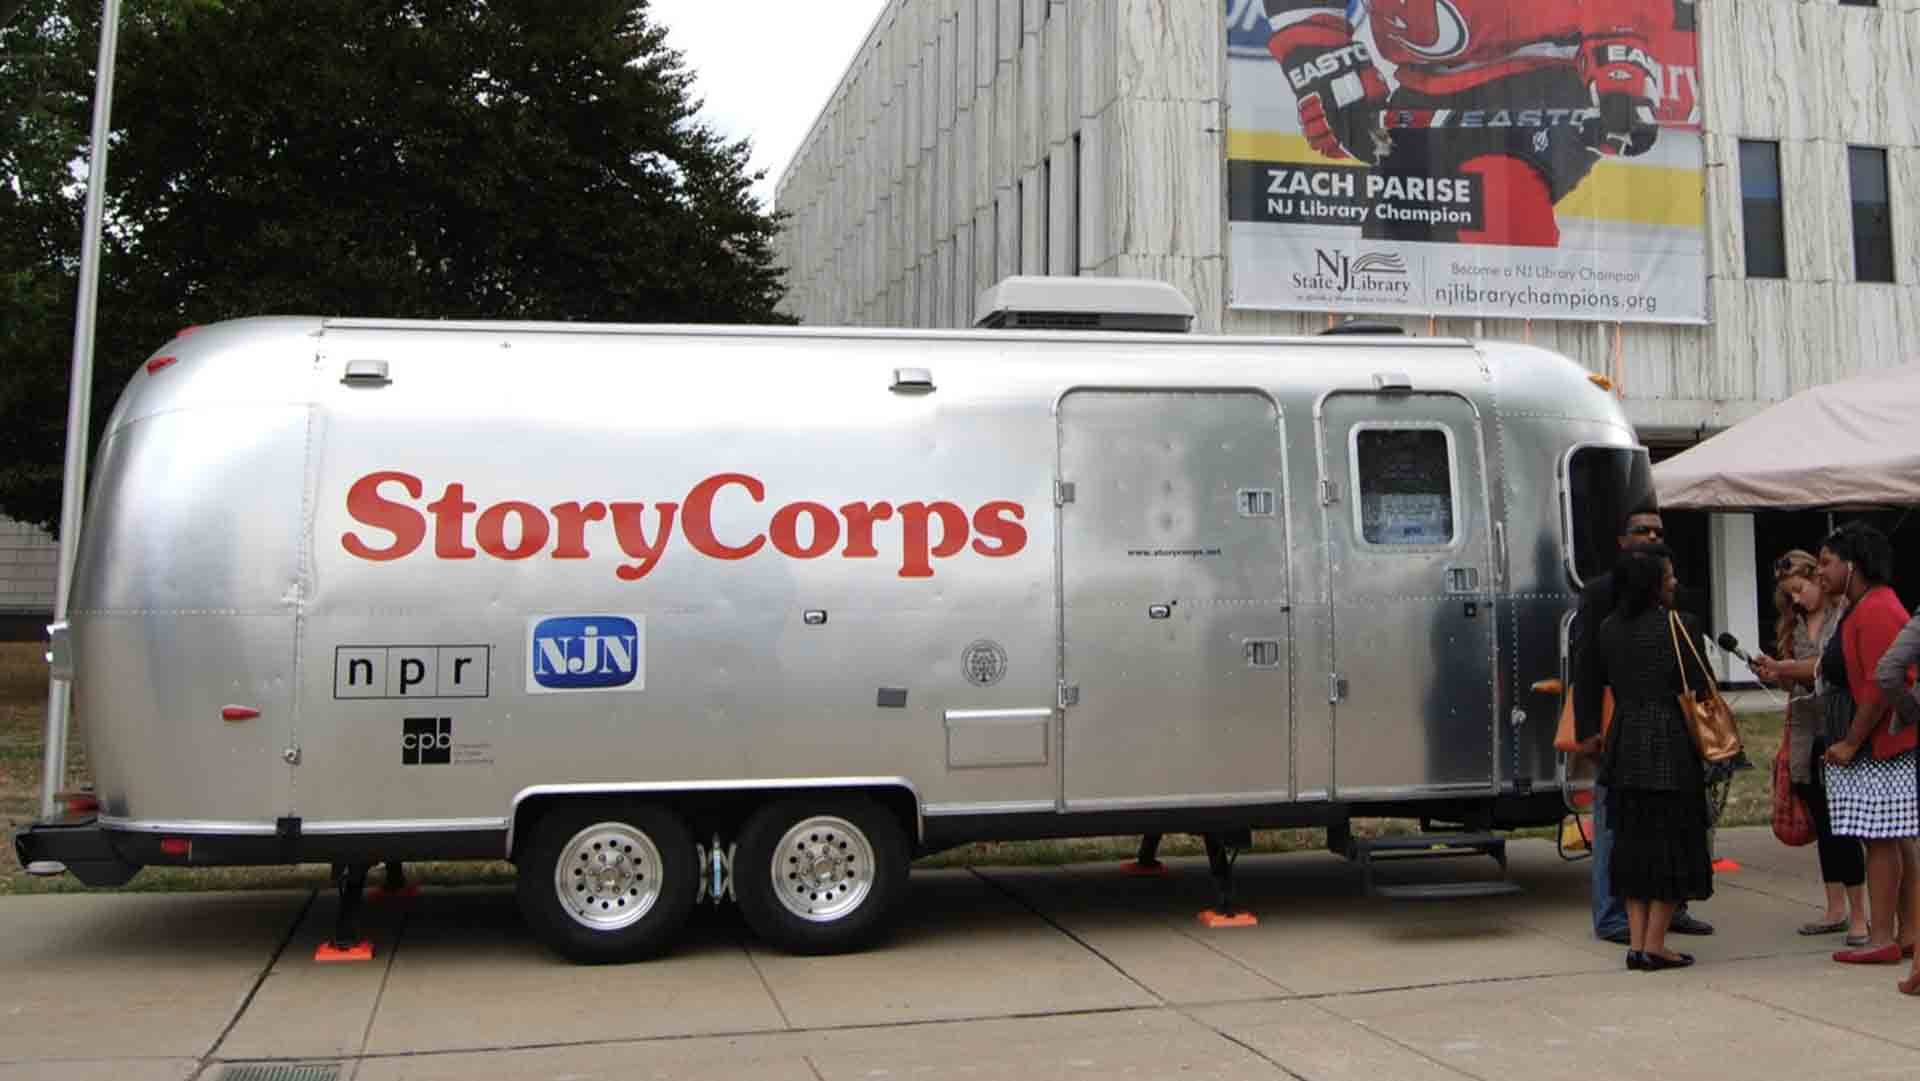 A StoryCorps mobile recording booth in front of the New Jersey State Library.